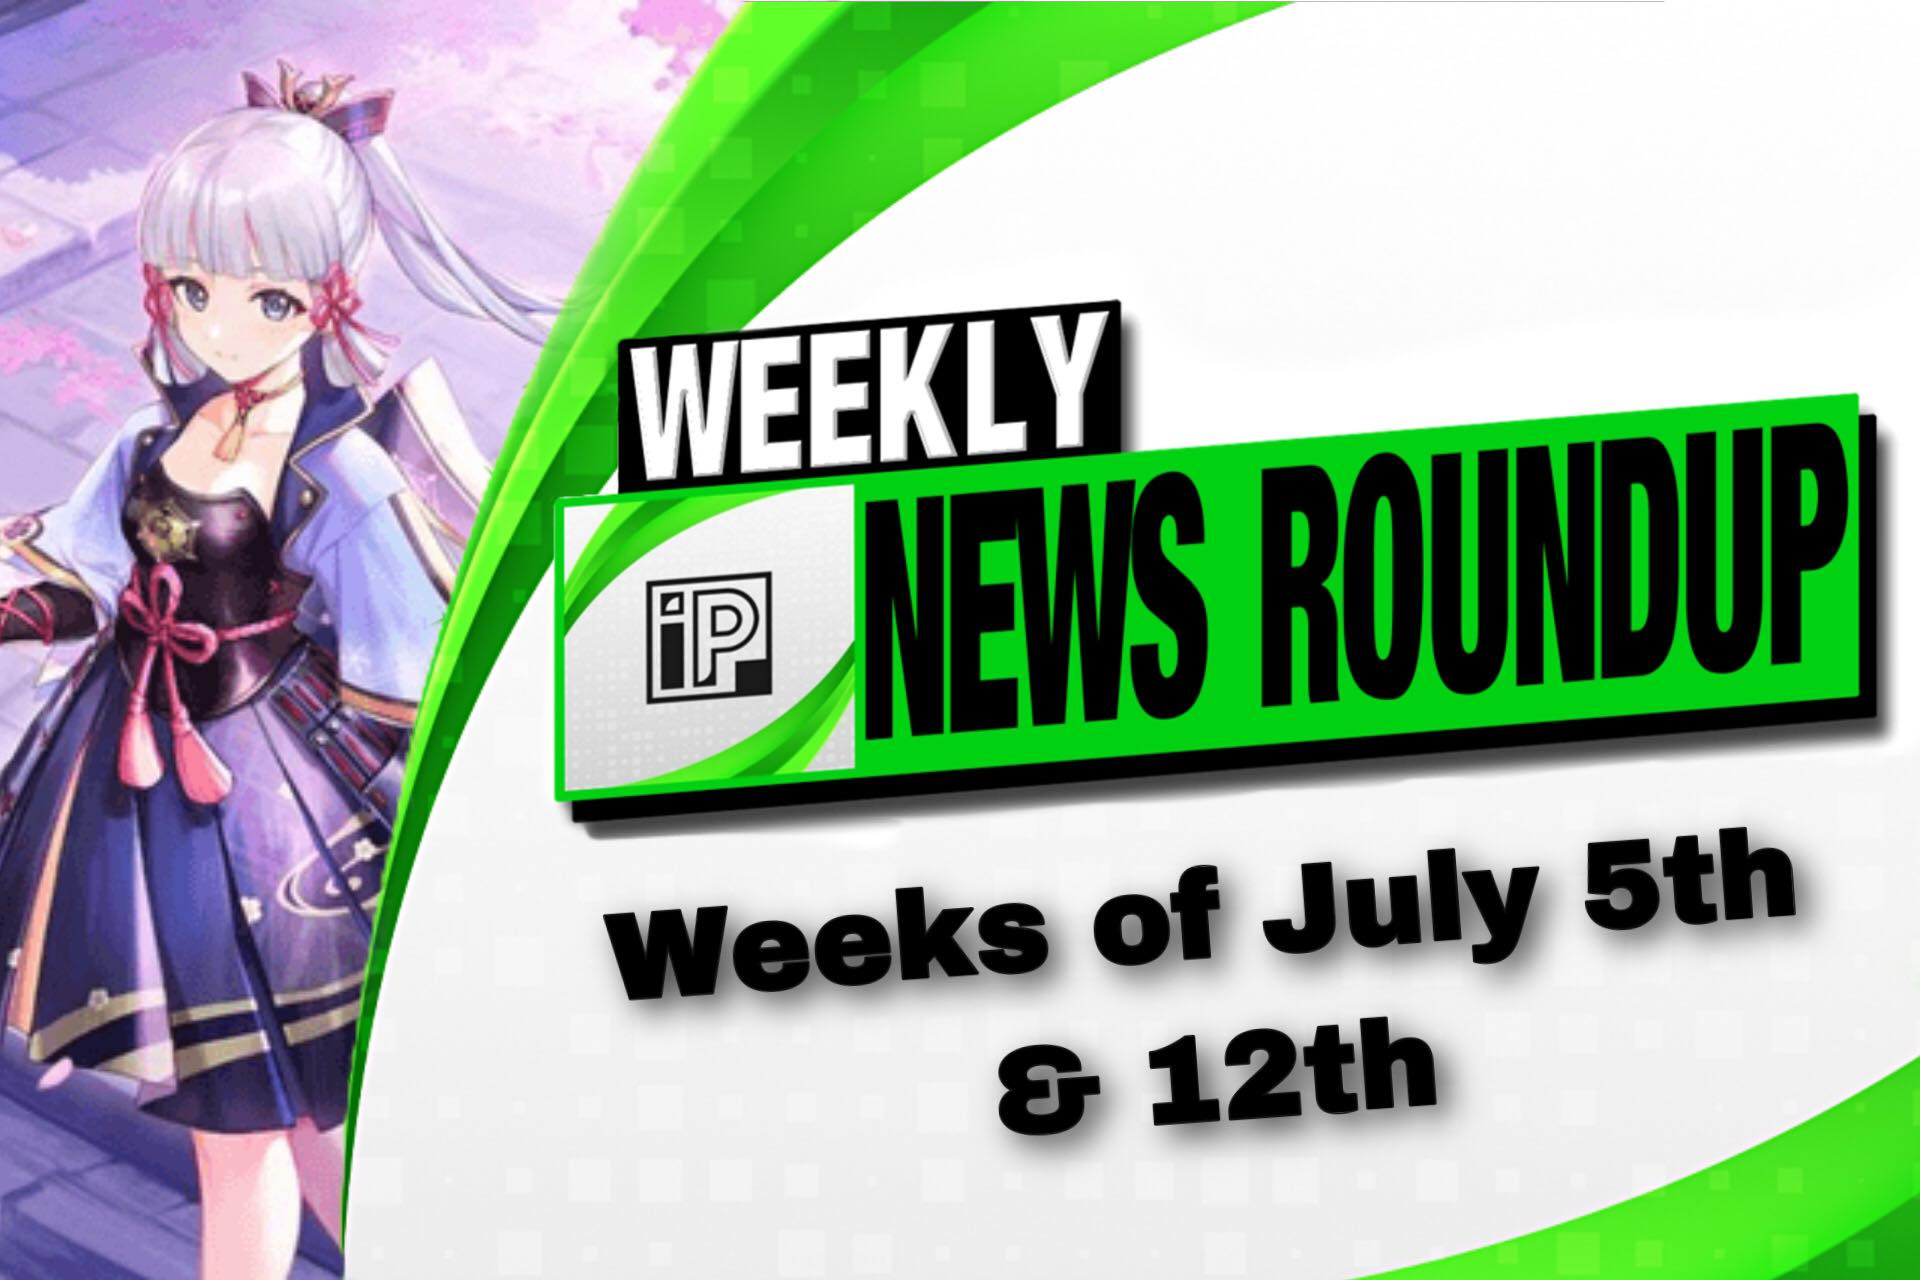 Weekly News Roundup – Weeks of July 5th & 12th